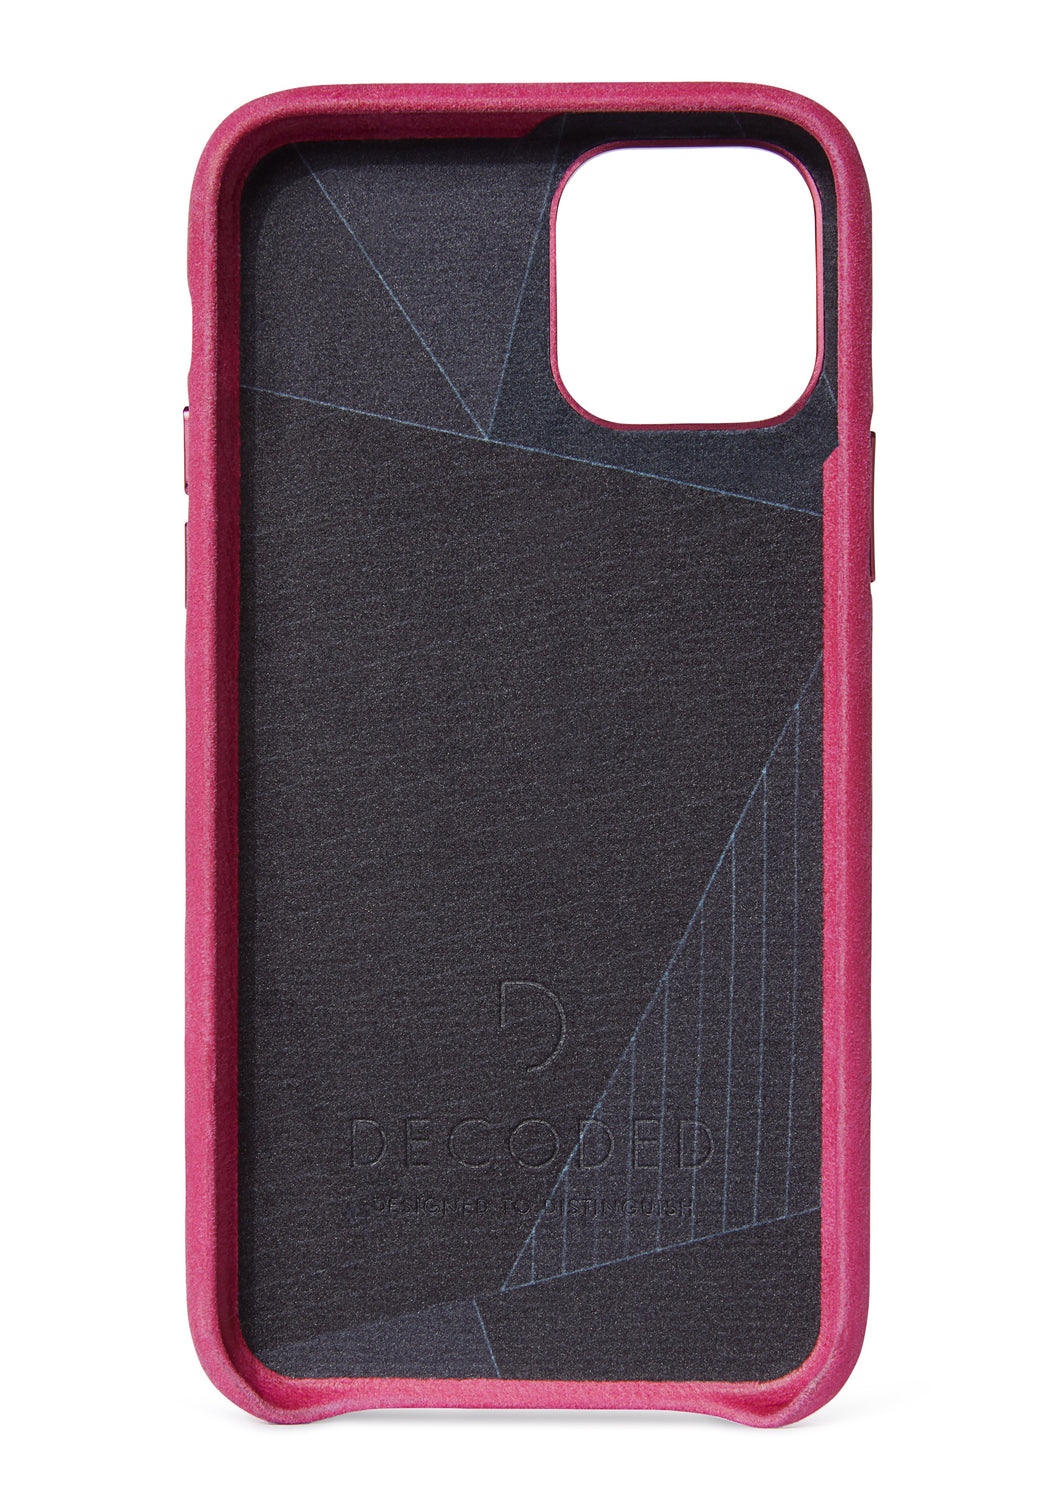 Back Cover Fuchsia - iPhone 11